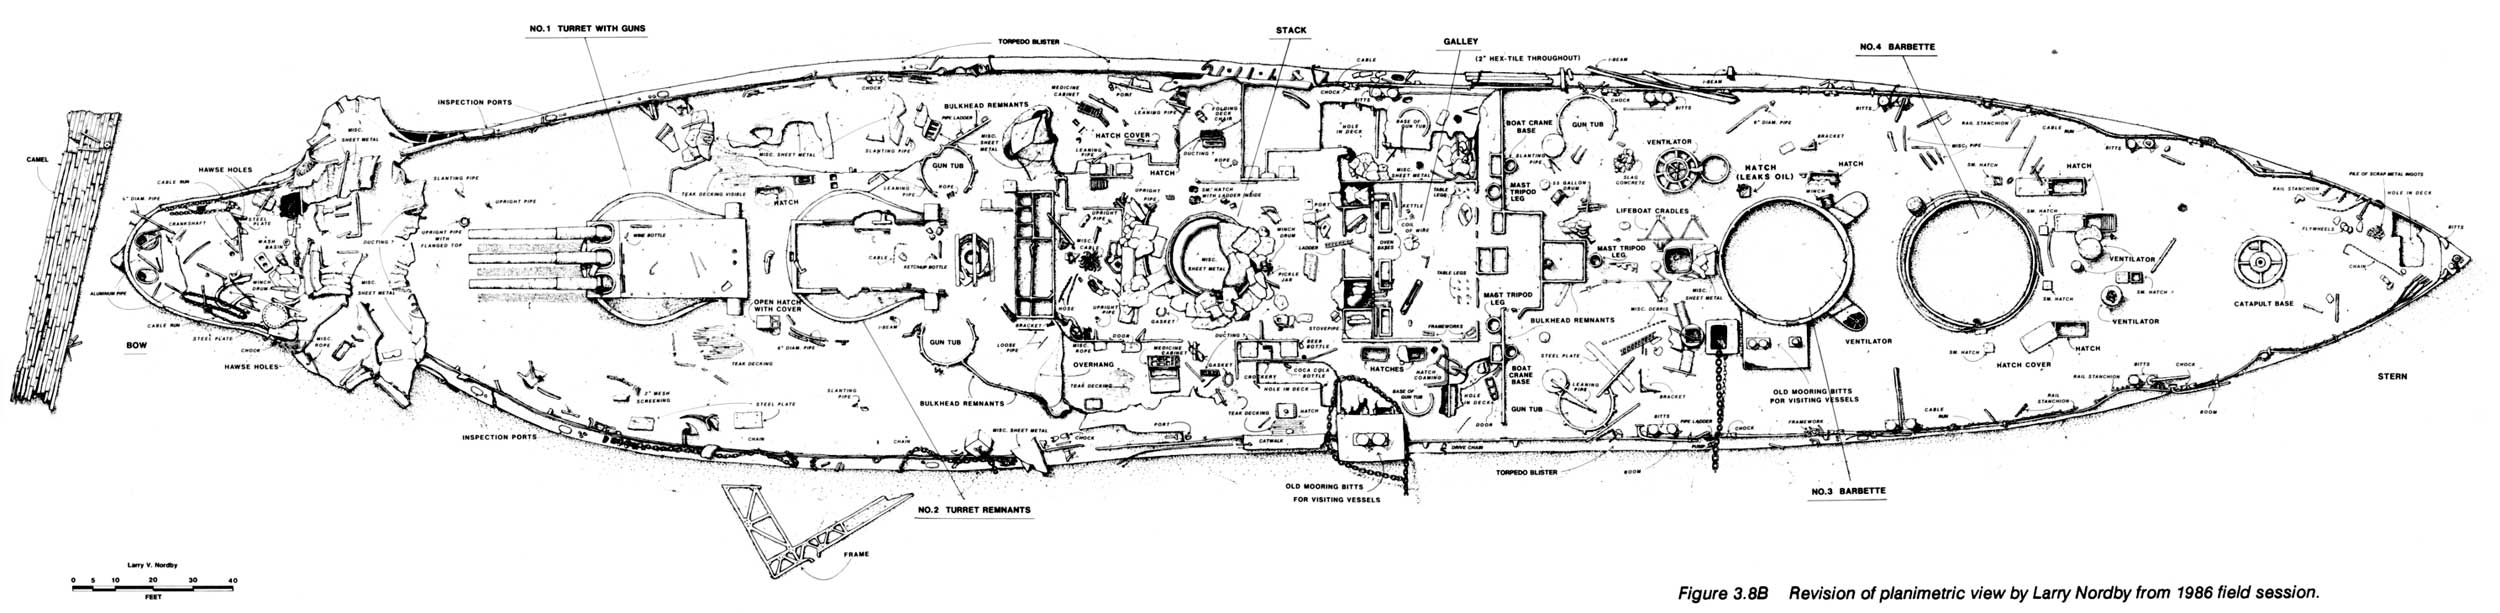 Uss Arizona Memorial Submerged Cultural Resources Study Chapter 3 2001 Lincoln Navigator Engine Diagram Drawings Of